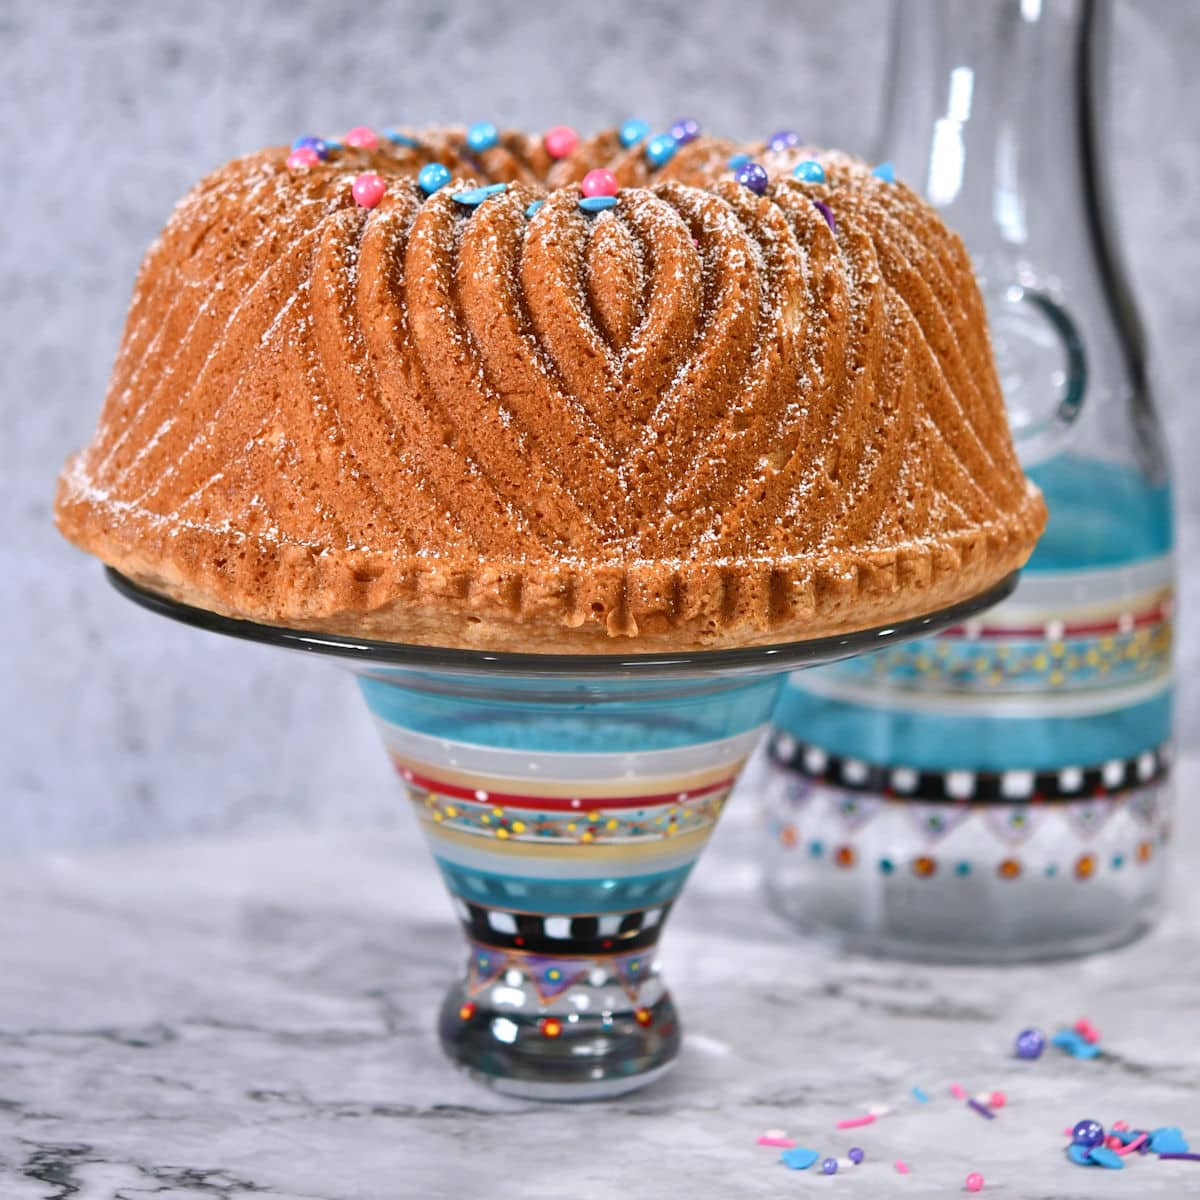 Uncut pound cake on a pedestal, decorated with powdered sugar and candy decorations